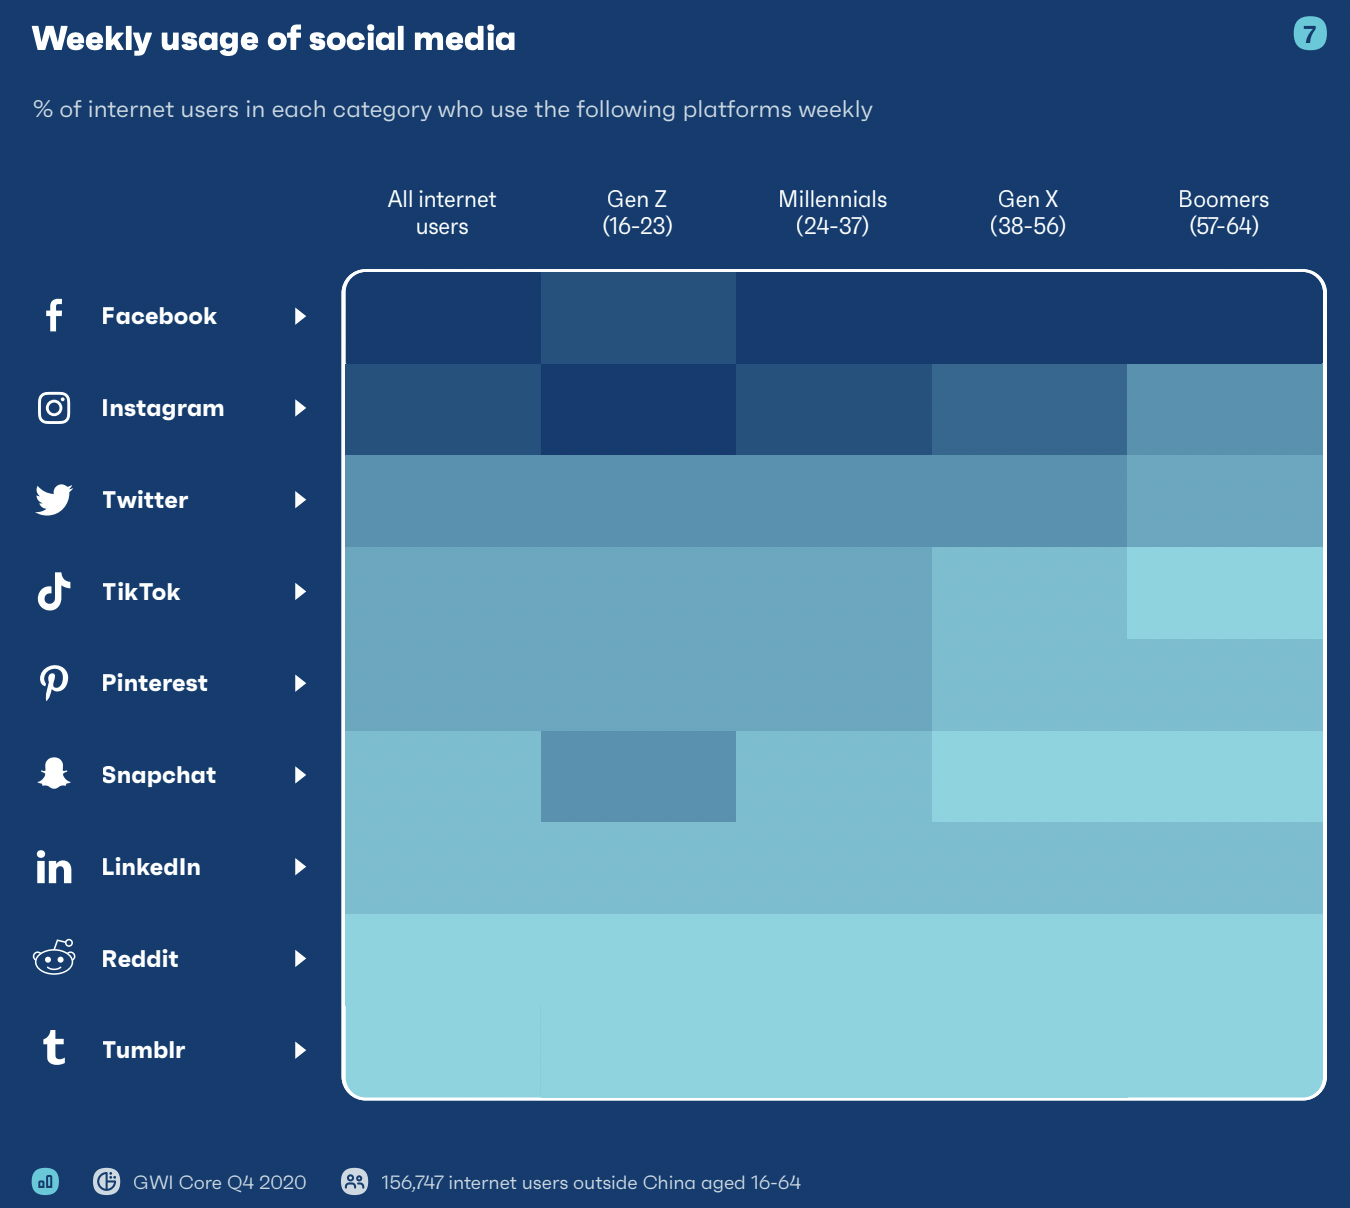 social media users by age group and platform